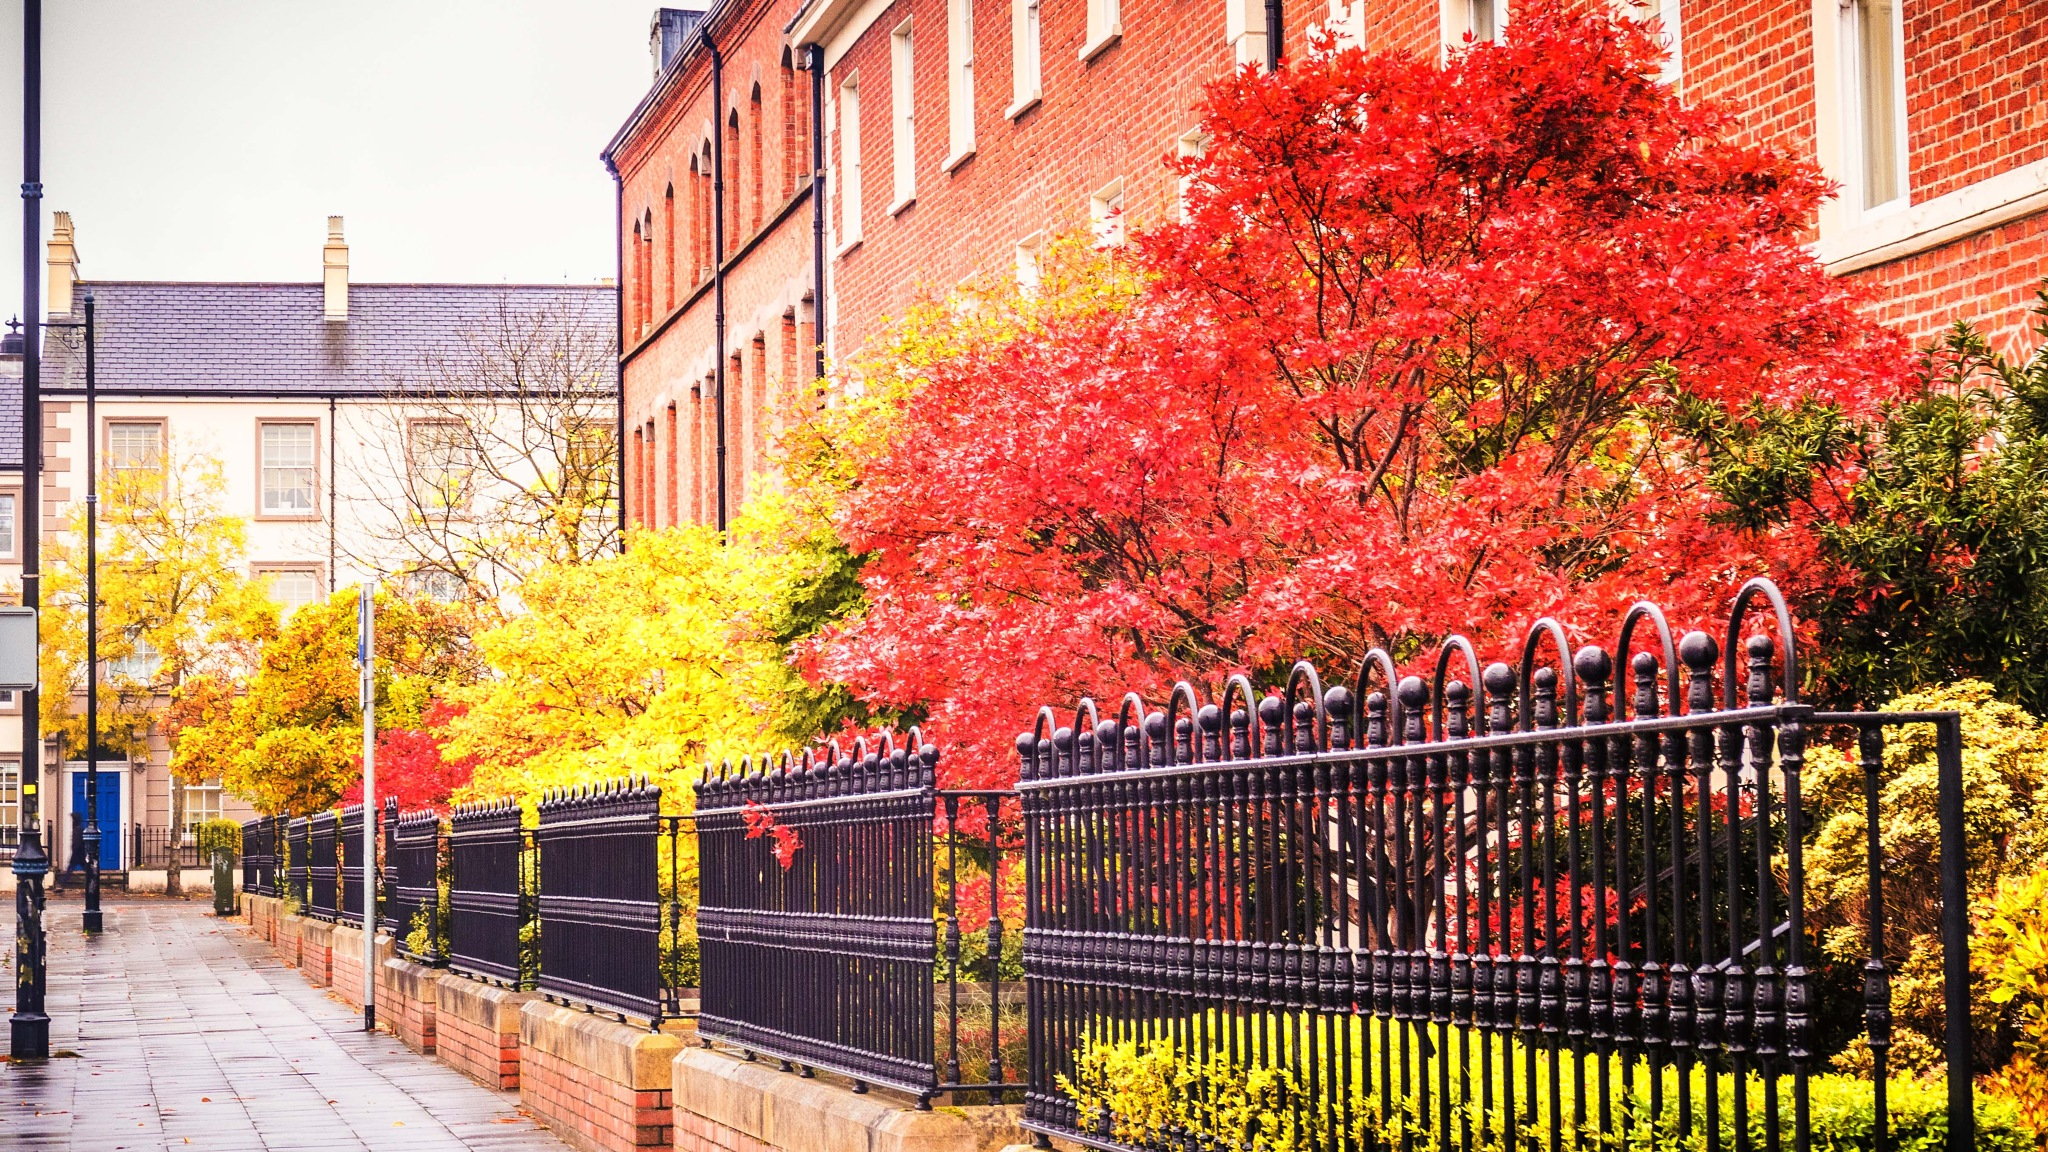 Fall at Queen's. no.2 by billymcwilliams